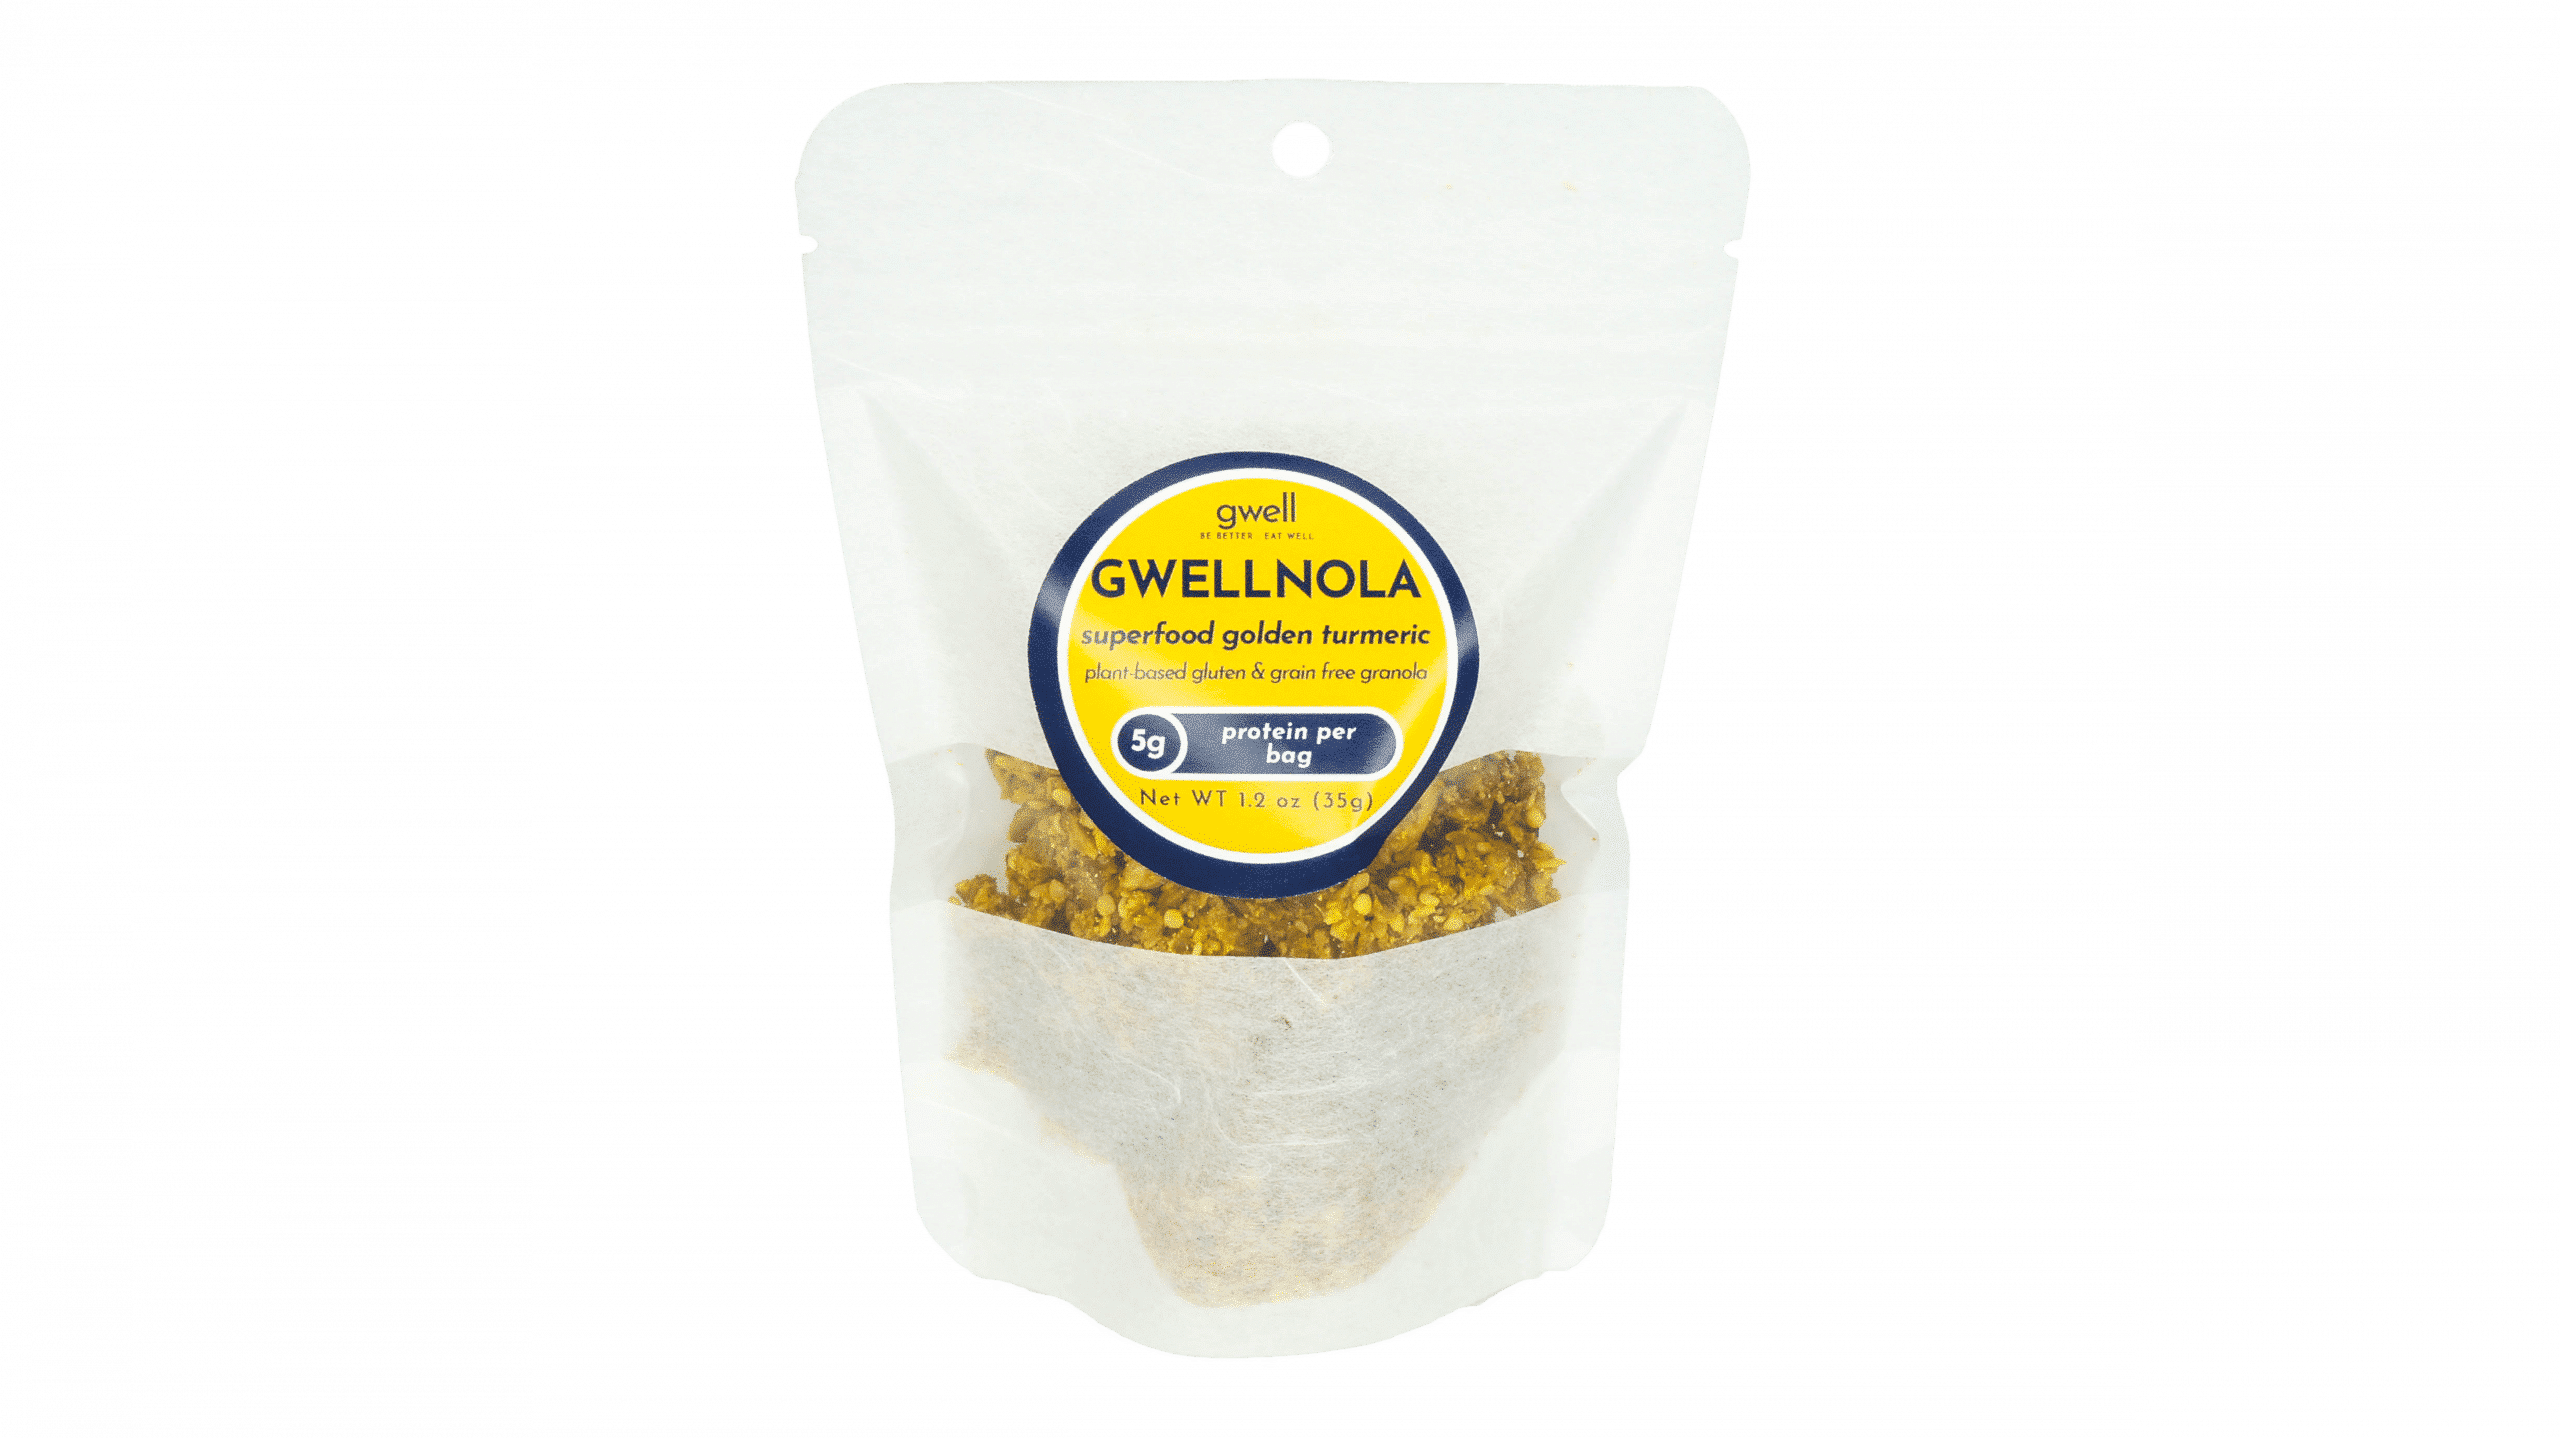 Gwellnola Gluten Free Superfood Granola - good source of protein - powered by hemp seeds and turmeric